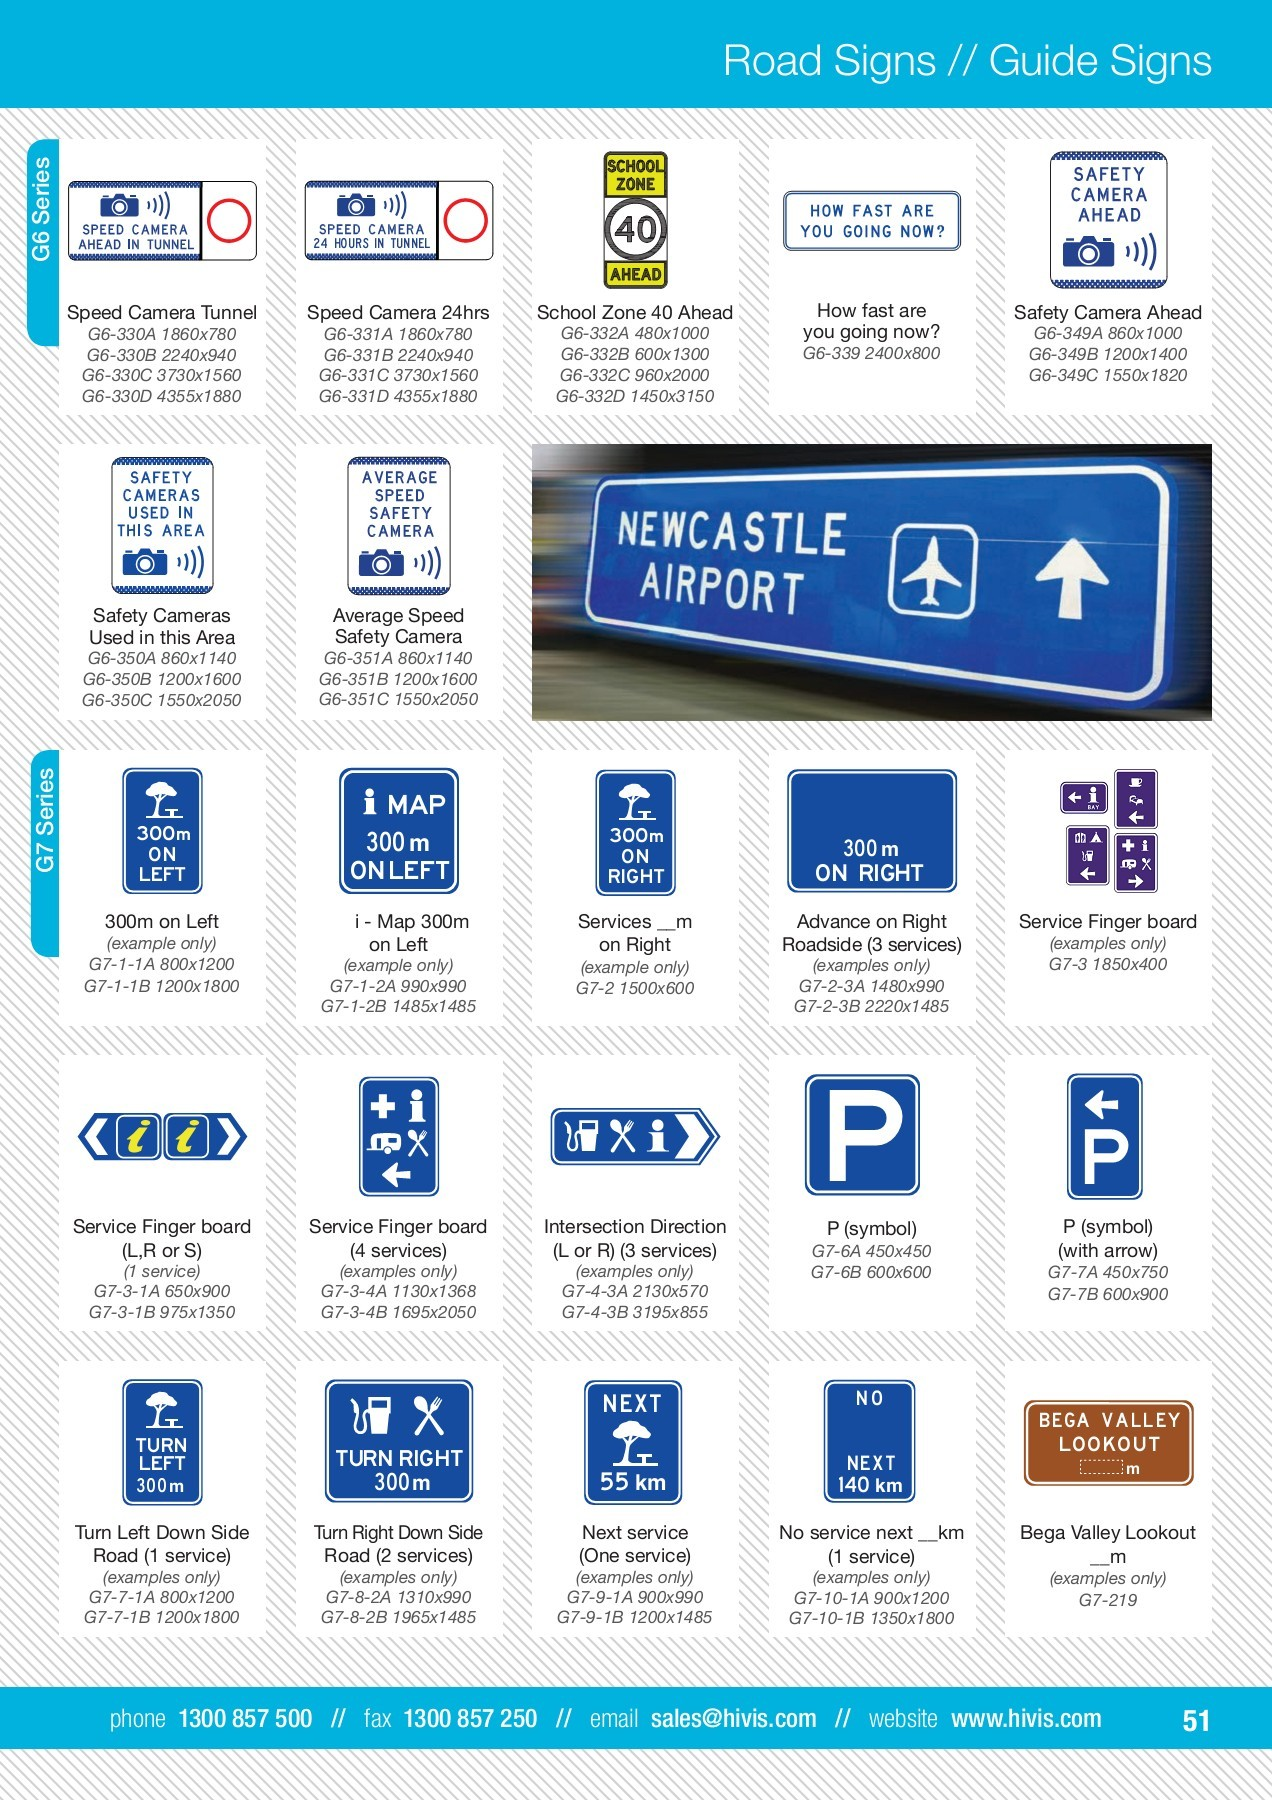 RECYCLABLE MATERIAL OPTION PRIVATE RESIDENTS ONLY sign or sticker 200mm x 70mm